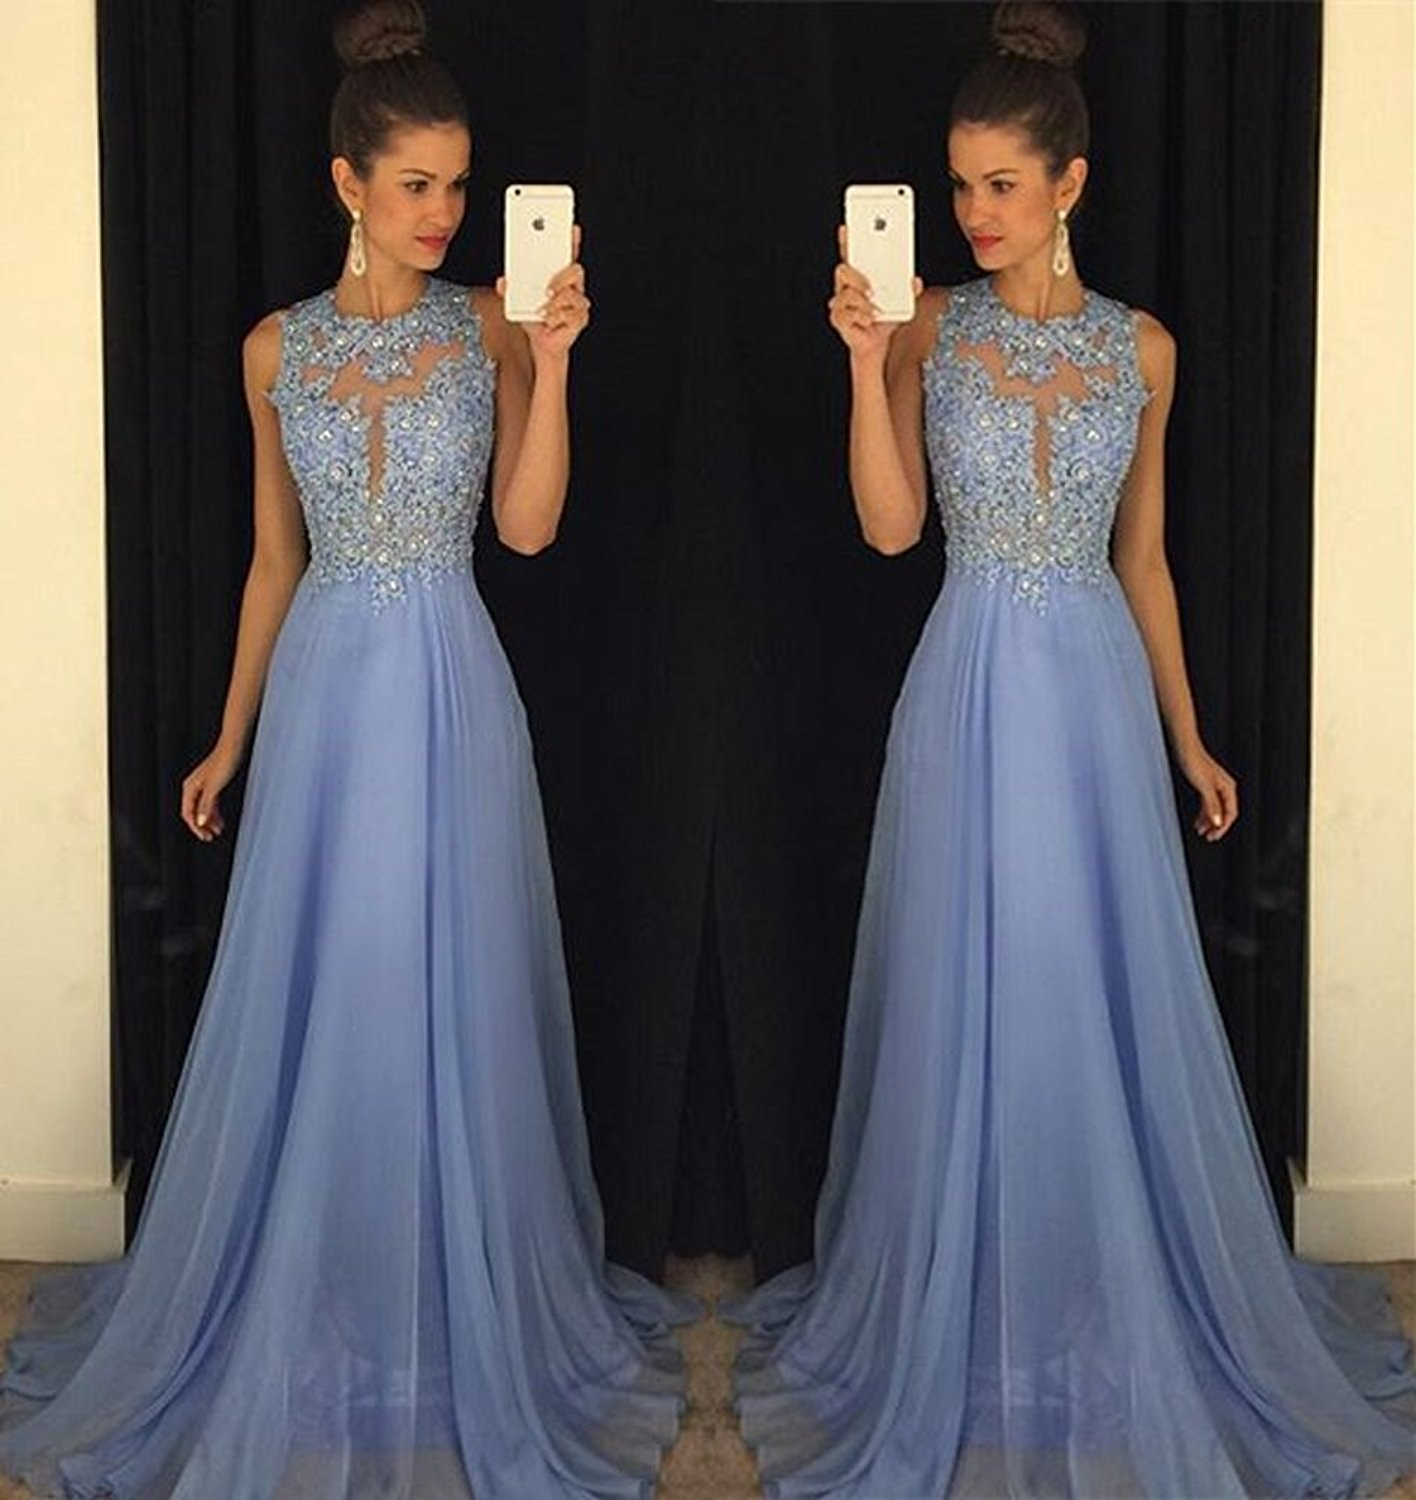 Long Chiffon Elegant Formal Evening Dress Wedding Bridal Dress Prom ...